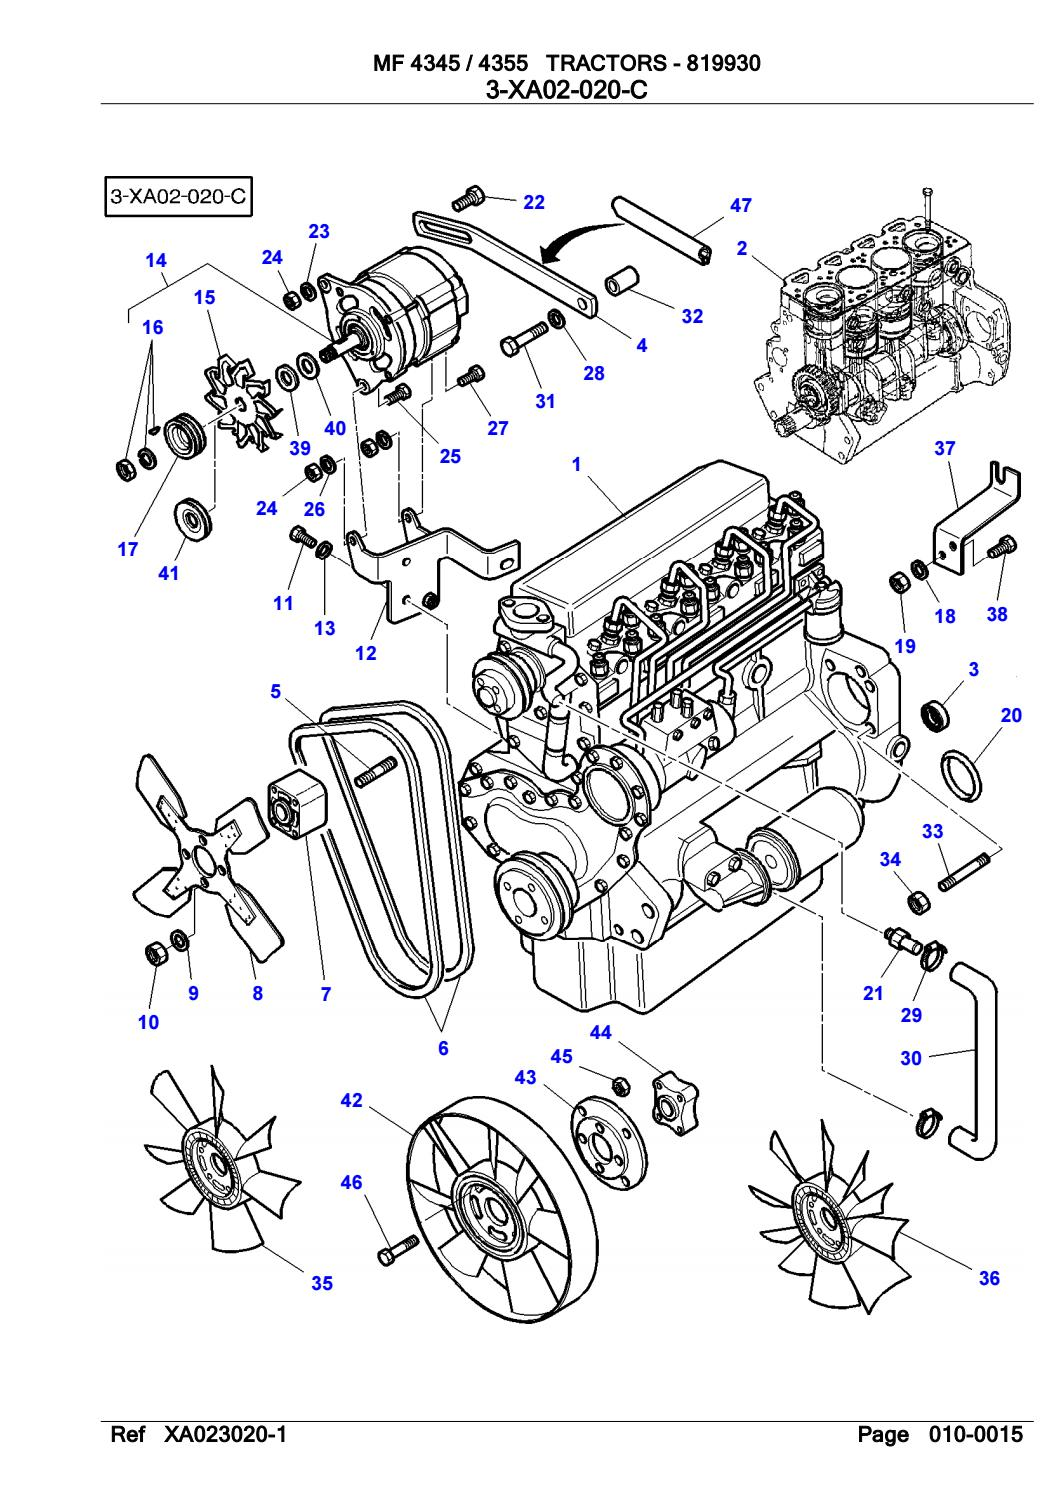 massey ferguson 4355 tractor service parts catalogue manual (part number  819930) by shaopan79482182 - issuu  issuu